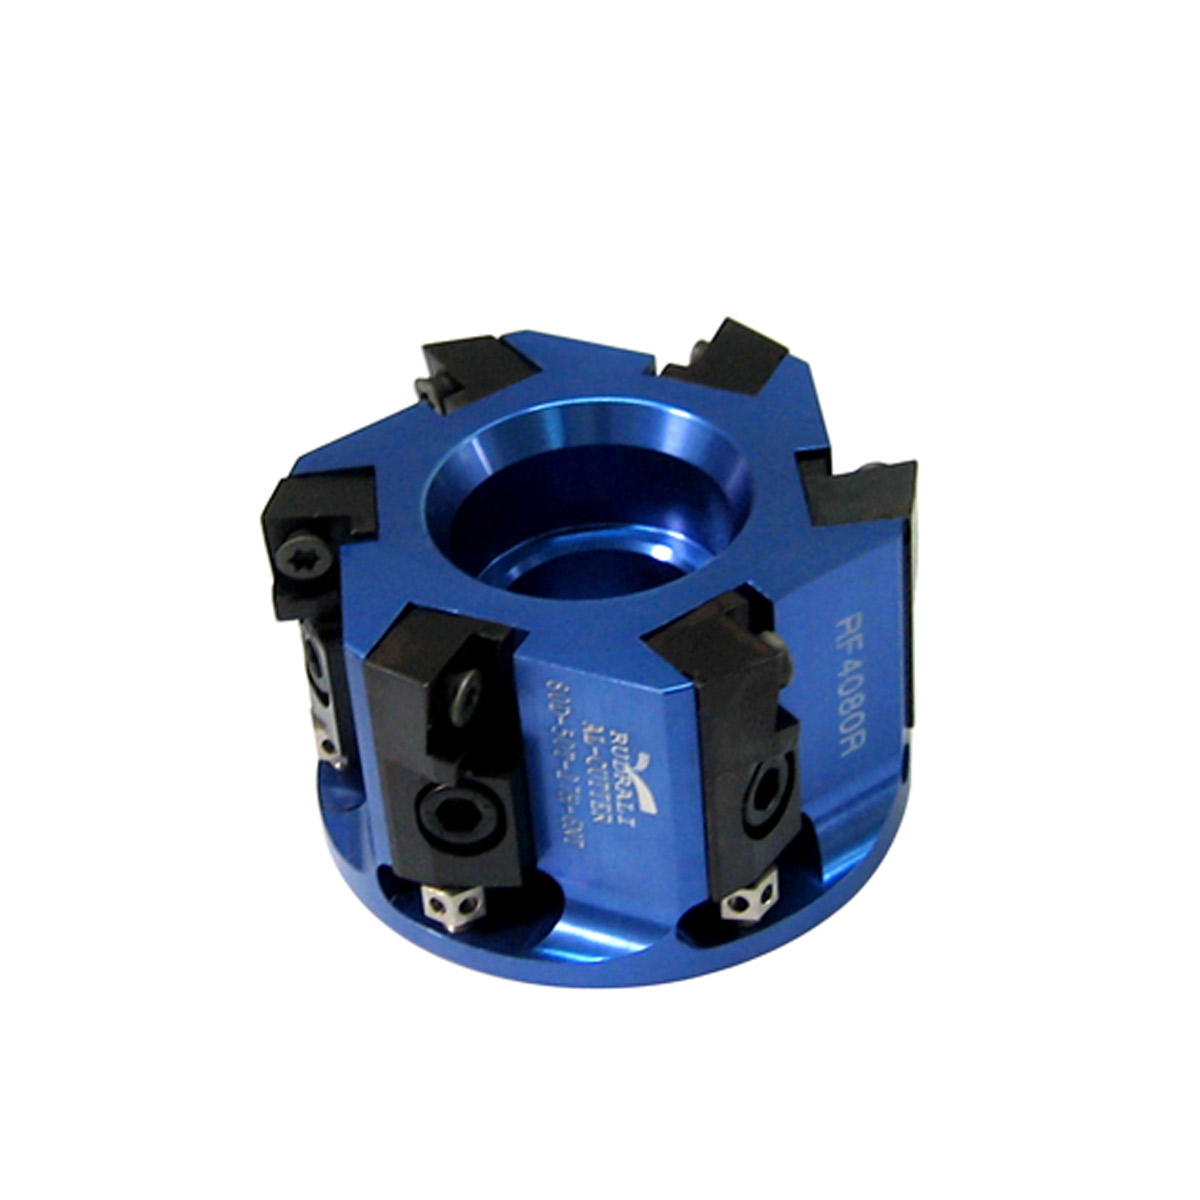 Milling Cutter Body Tools | Manufacturers | Supplier | India